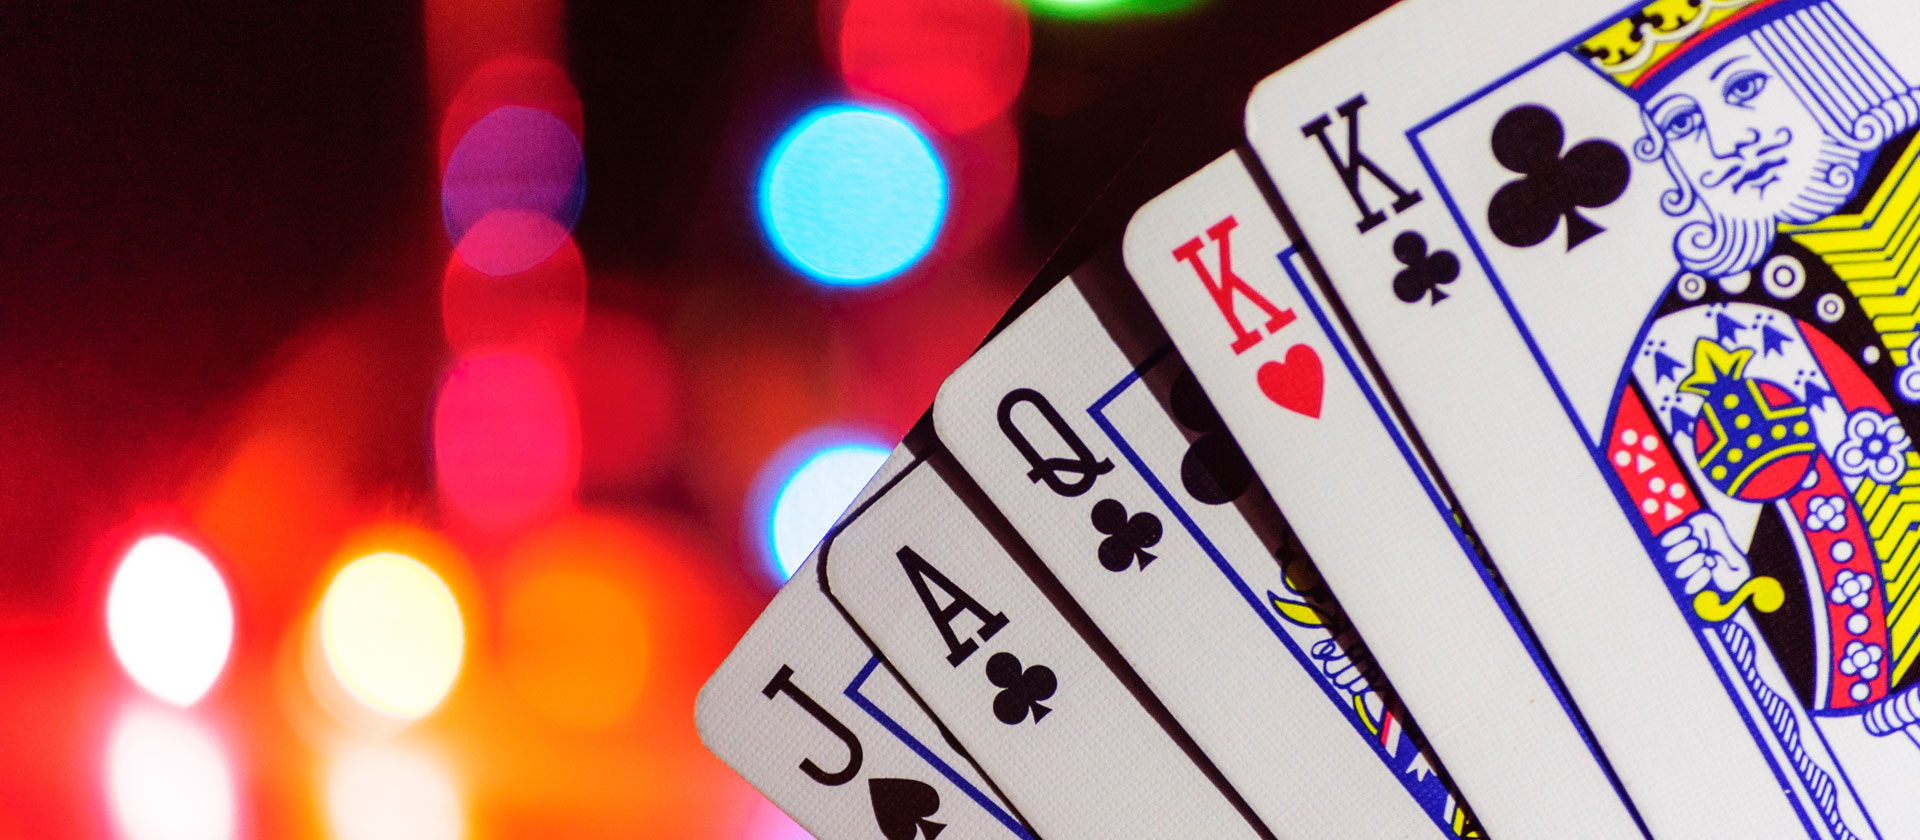 Top roulette tips to get the instant roulette profits